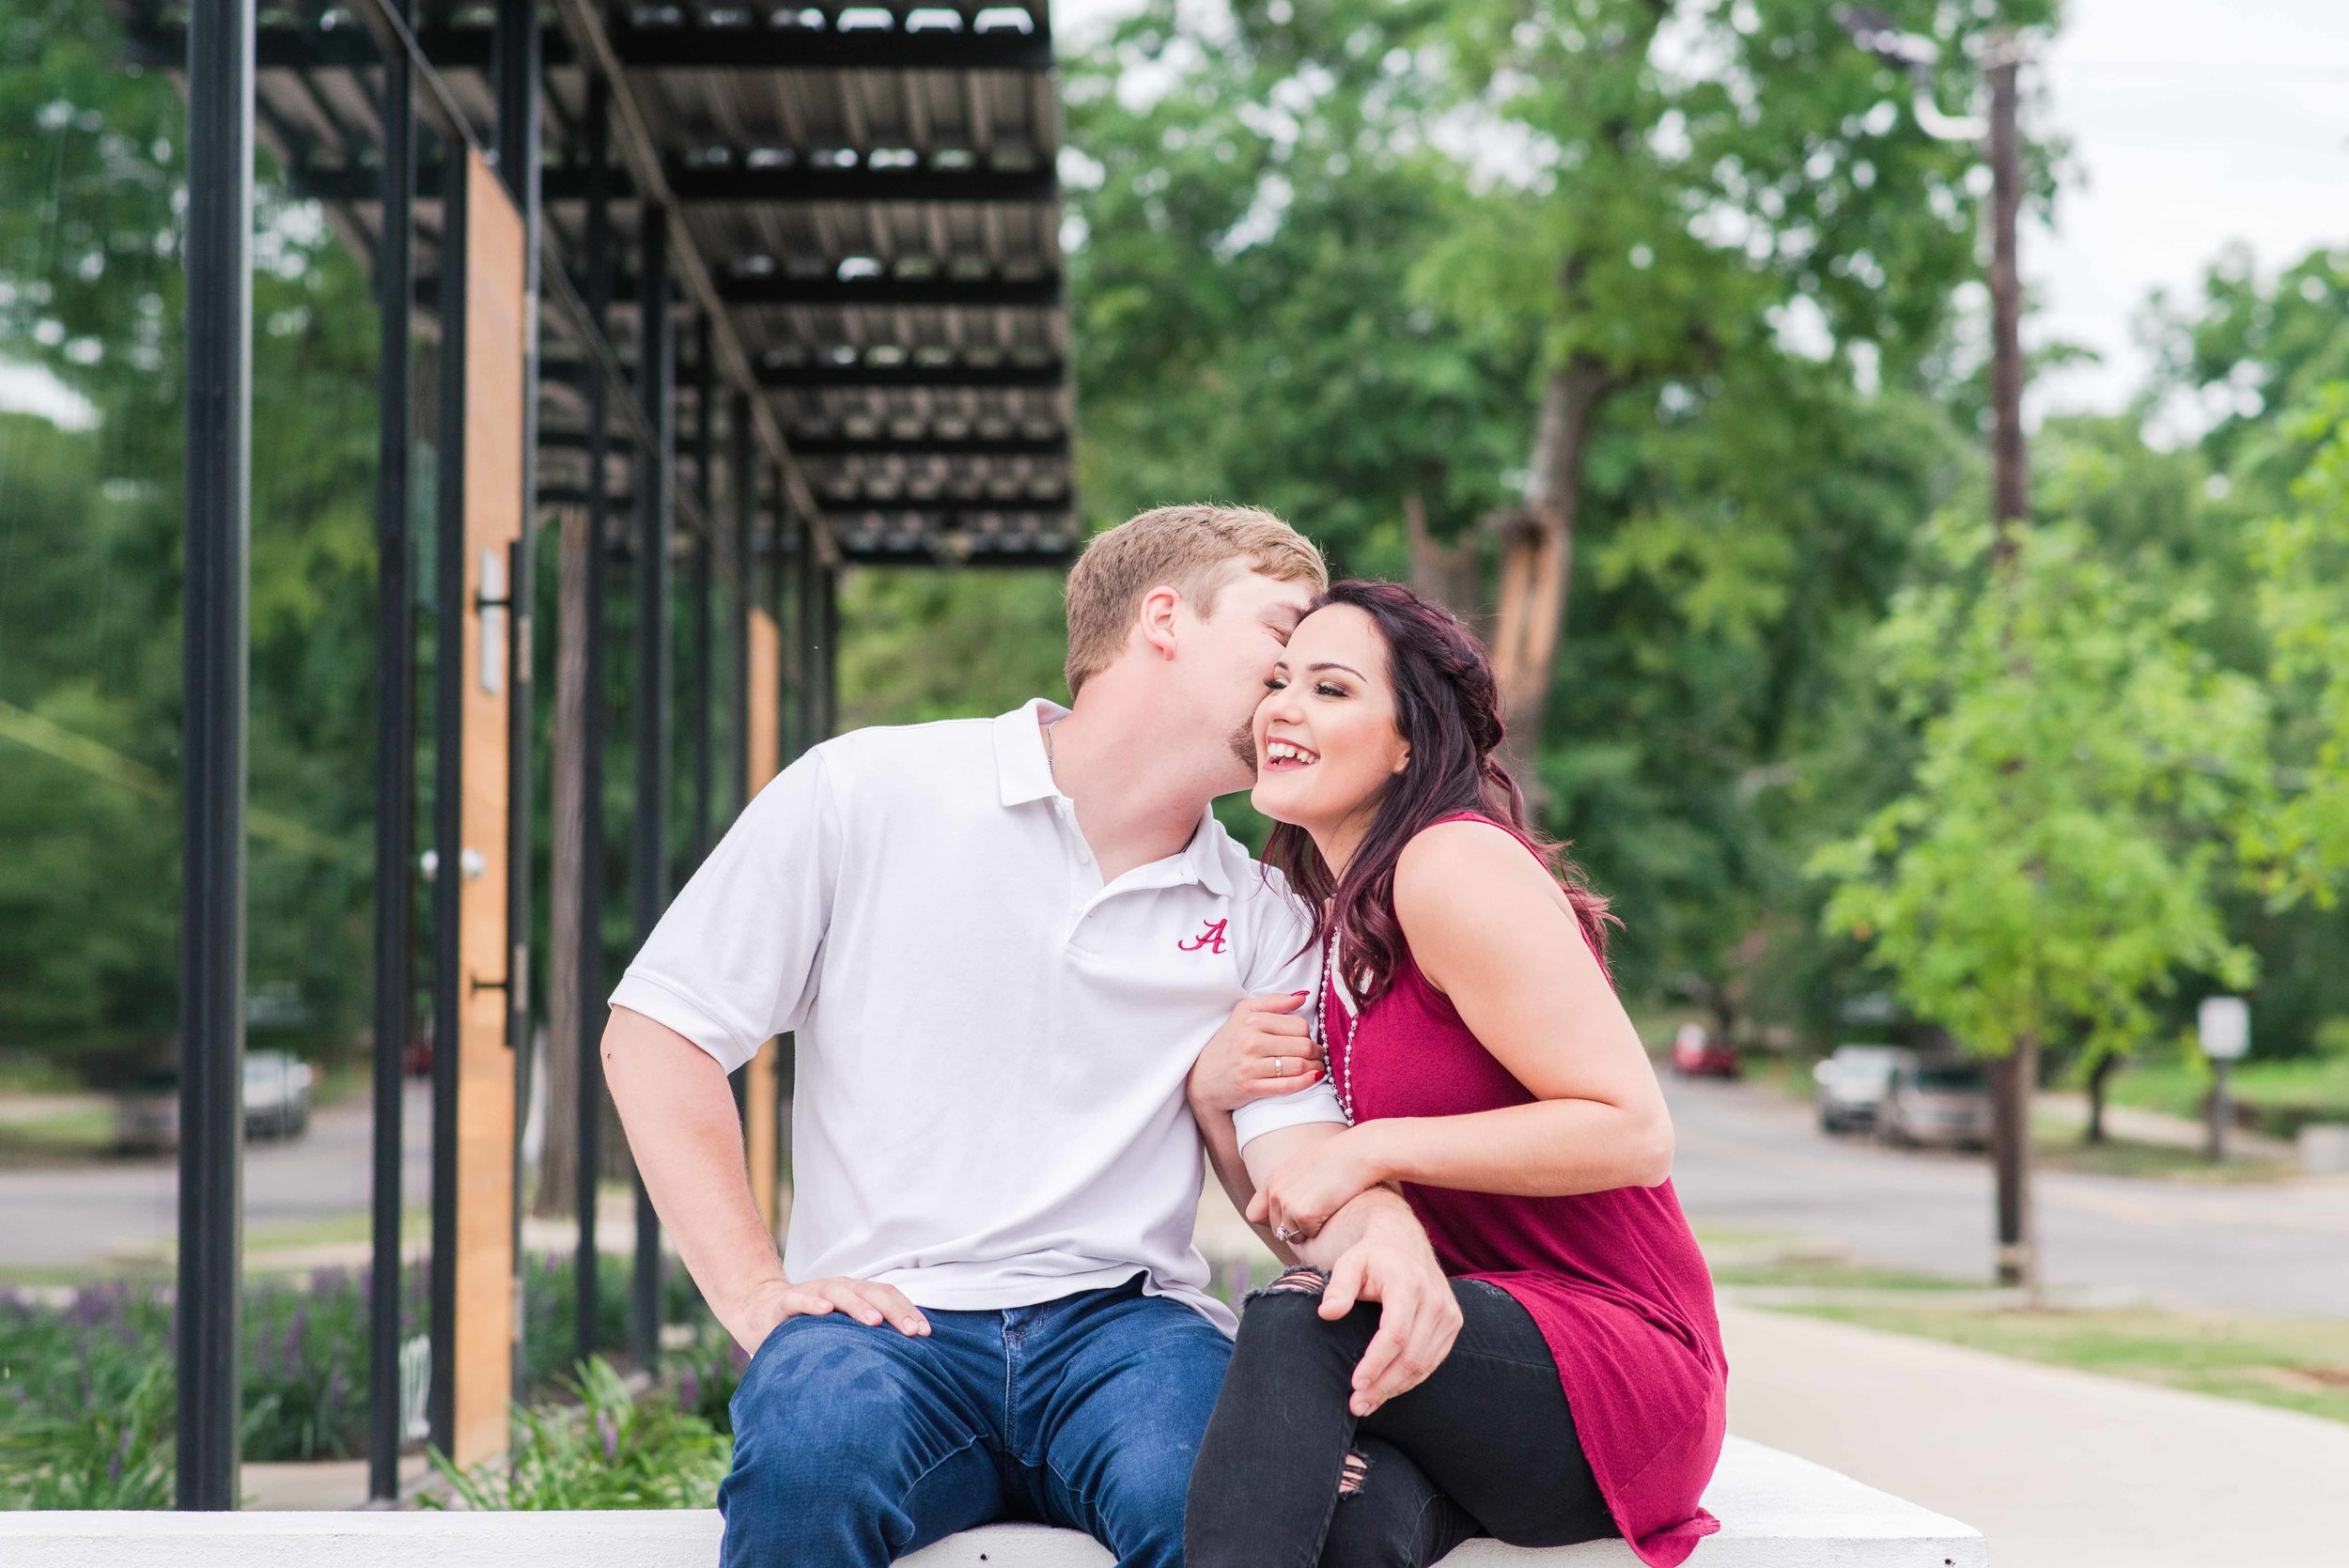 Avondale Engagement Portrait Session Birmingham Alabama Deborah Michelle Photography